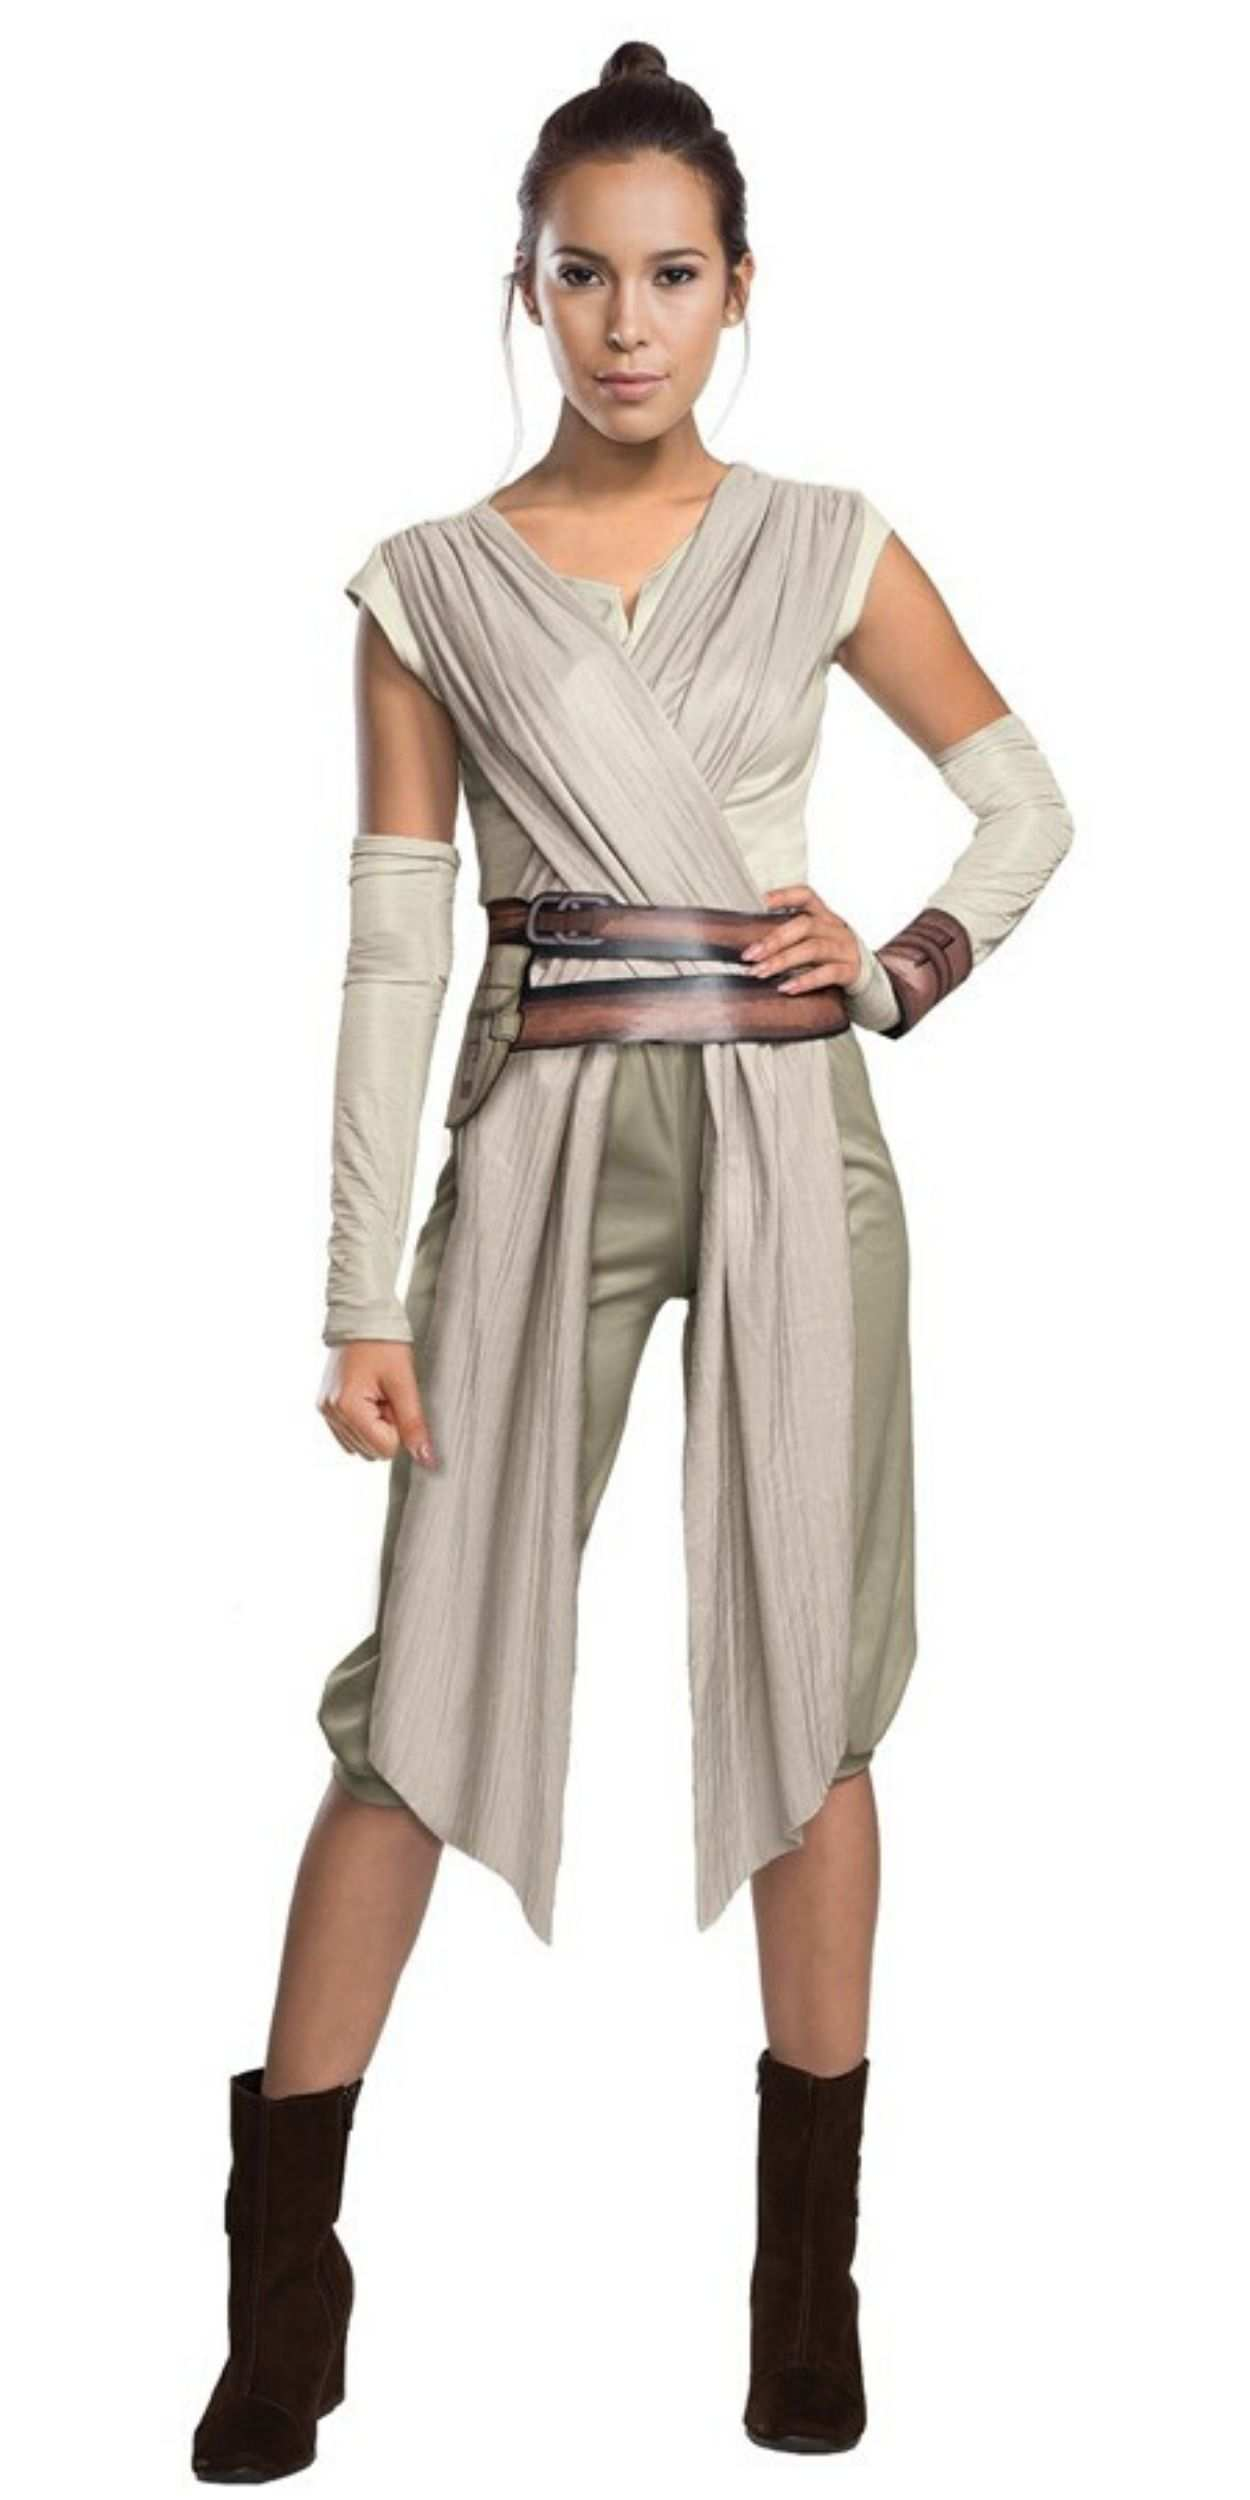 Woman in Rey Party Costume